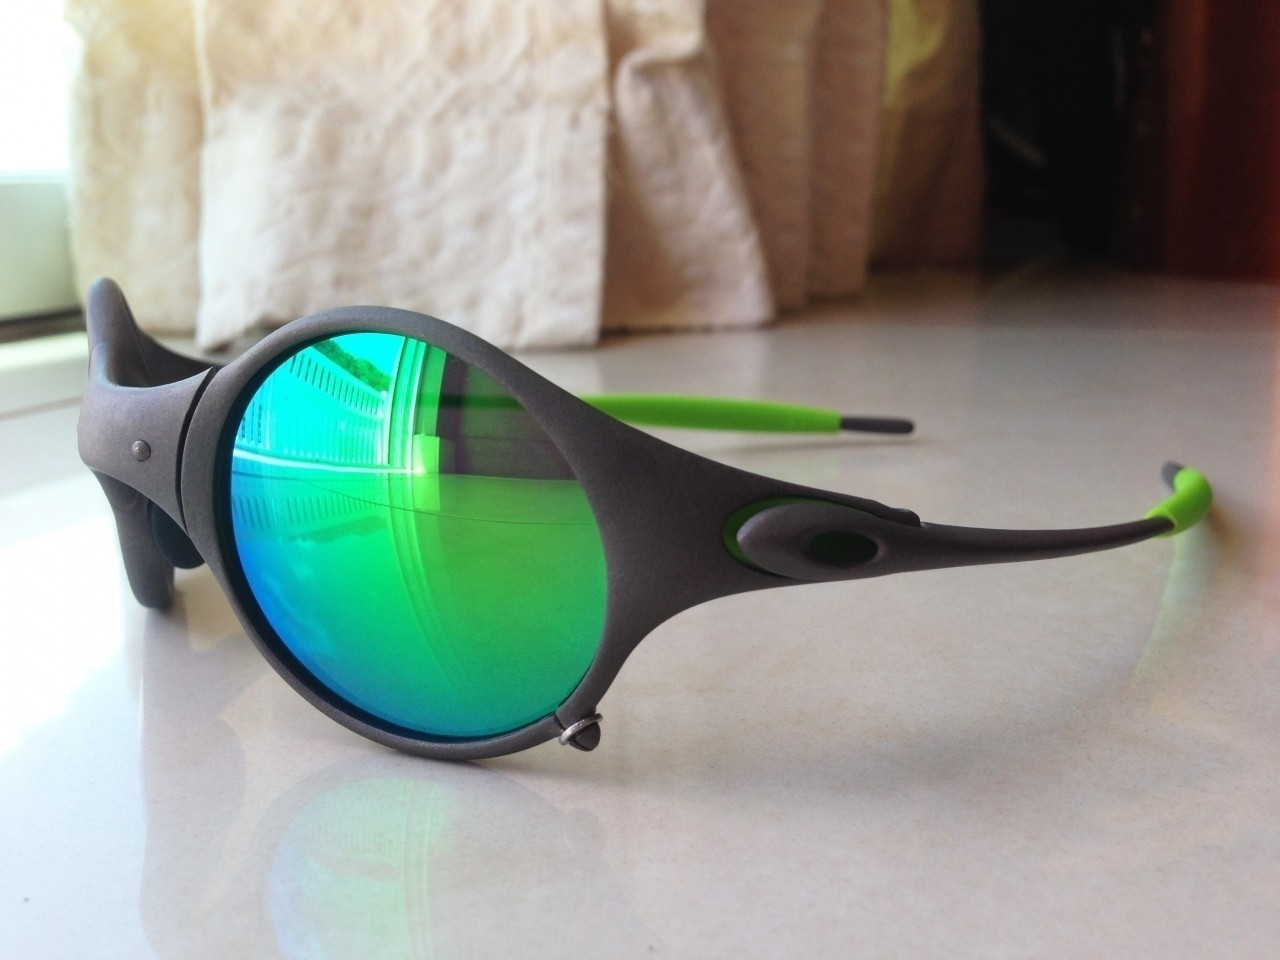 OAKLEY MARS / X-METAL - ESMERALDINE POLARIZED LENSES